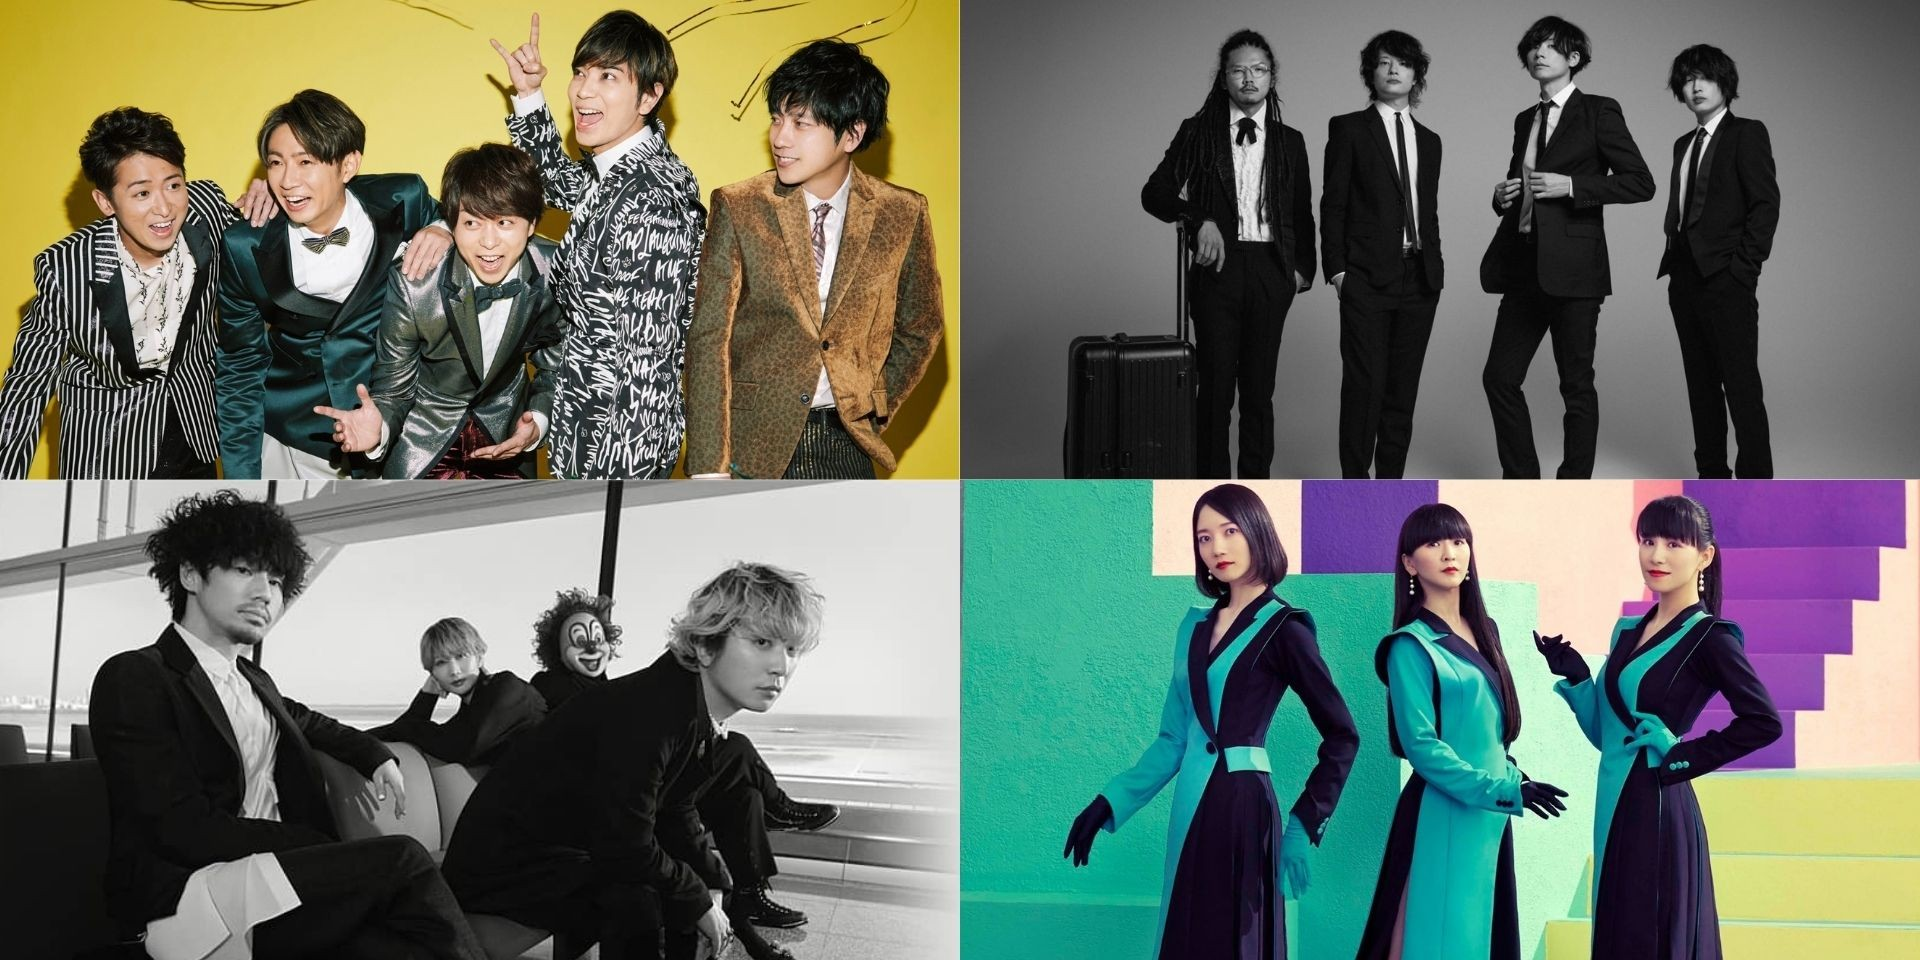 Spotify to hold Tokyo Super Hits Live 2020 featuring ARASHI, Perfume, End of the World, [Alexandros], and more